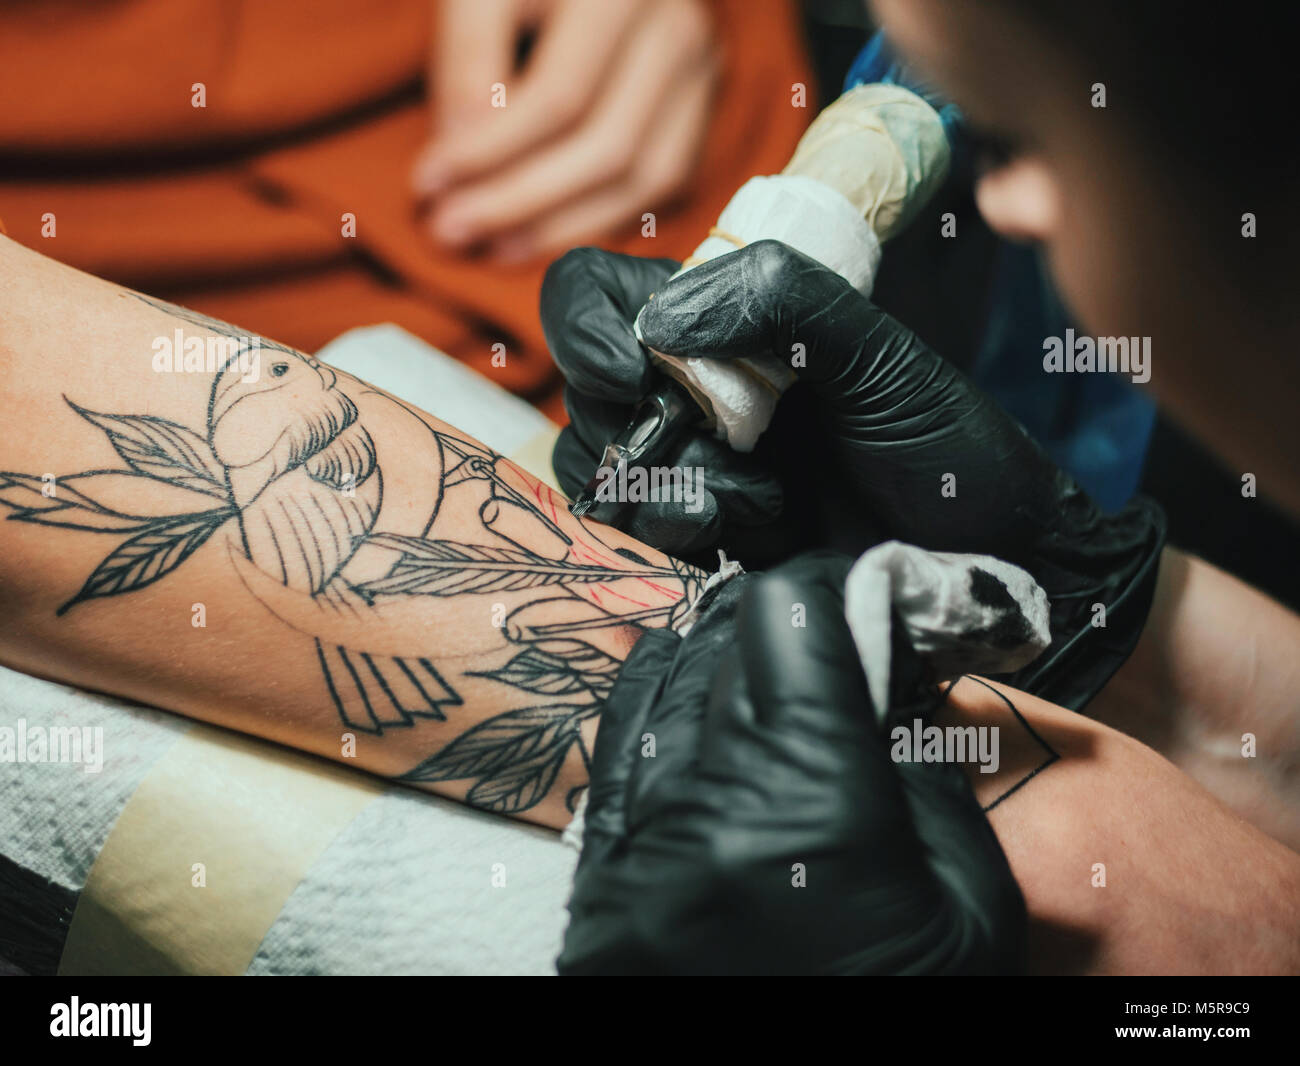 201b0f4b2 Tattoo artist at work. Woman in black latex glove tattooing a young man's  hand with